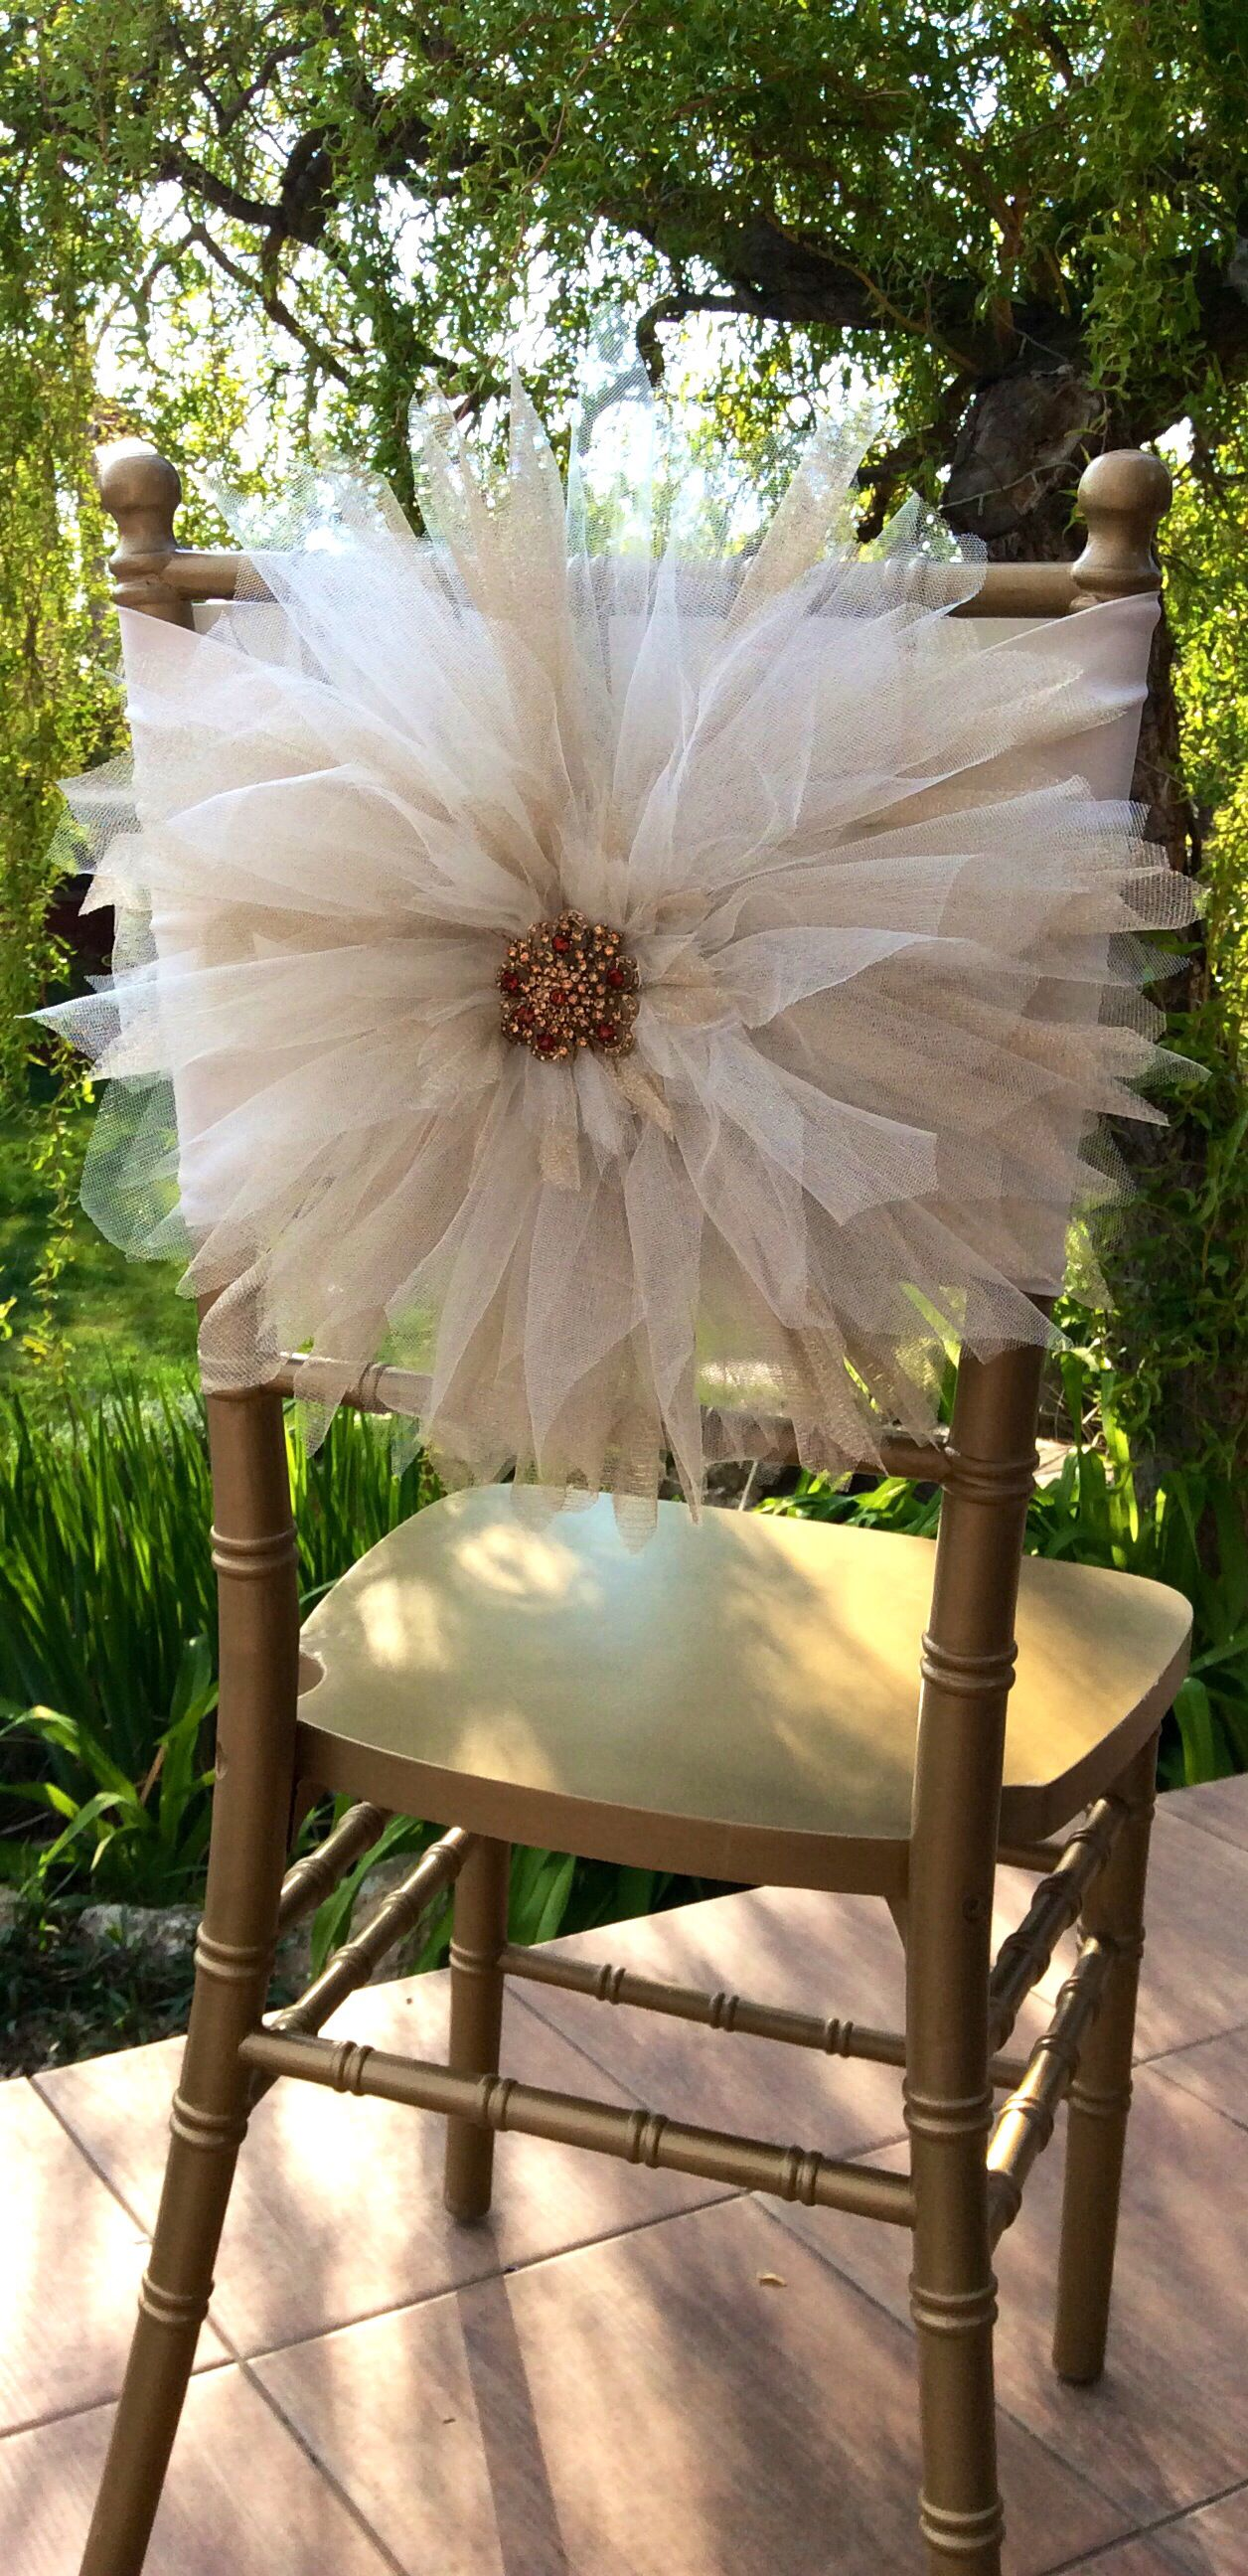 New tulle chair decoration  - by FloraRosa Design